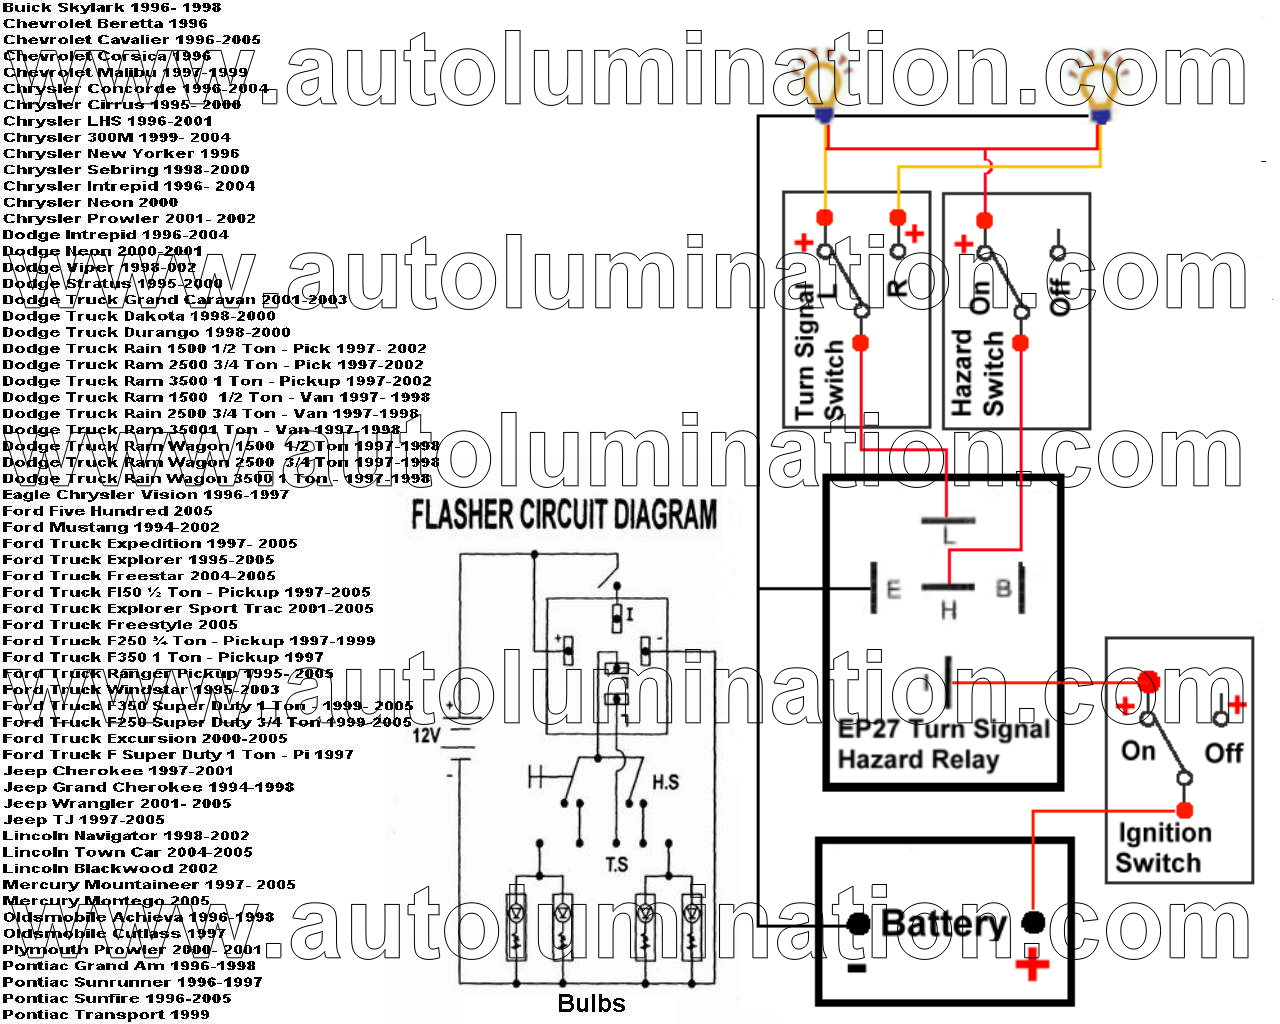 ep27_cross_reference_wm led flashers blinkers resistors load equalizers for turn signal ep35 flasher wiring diagram at couponss.co